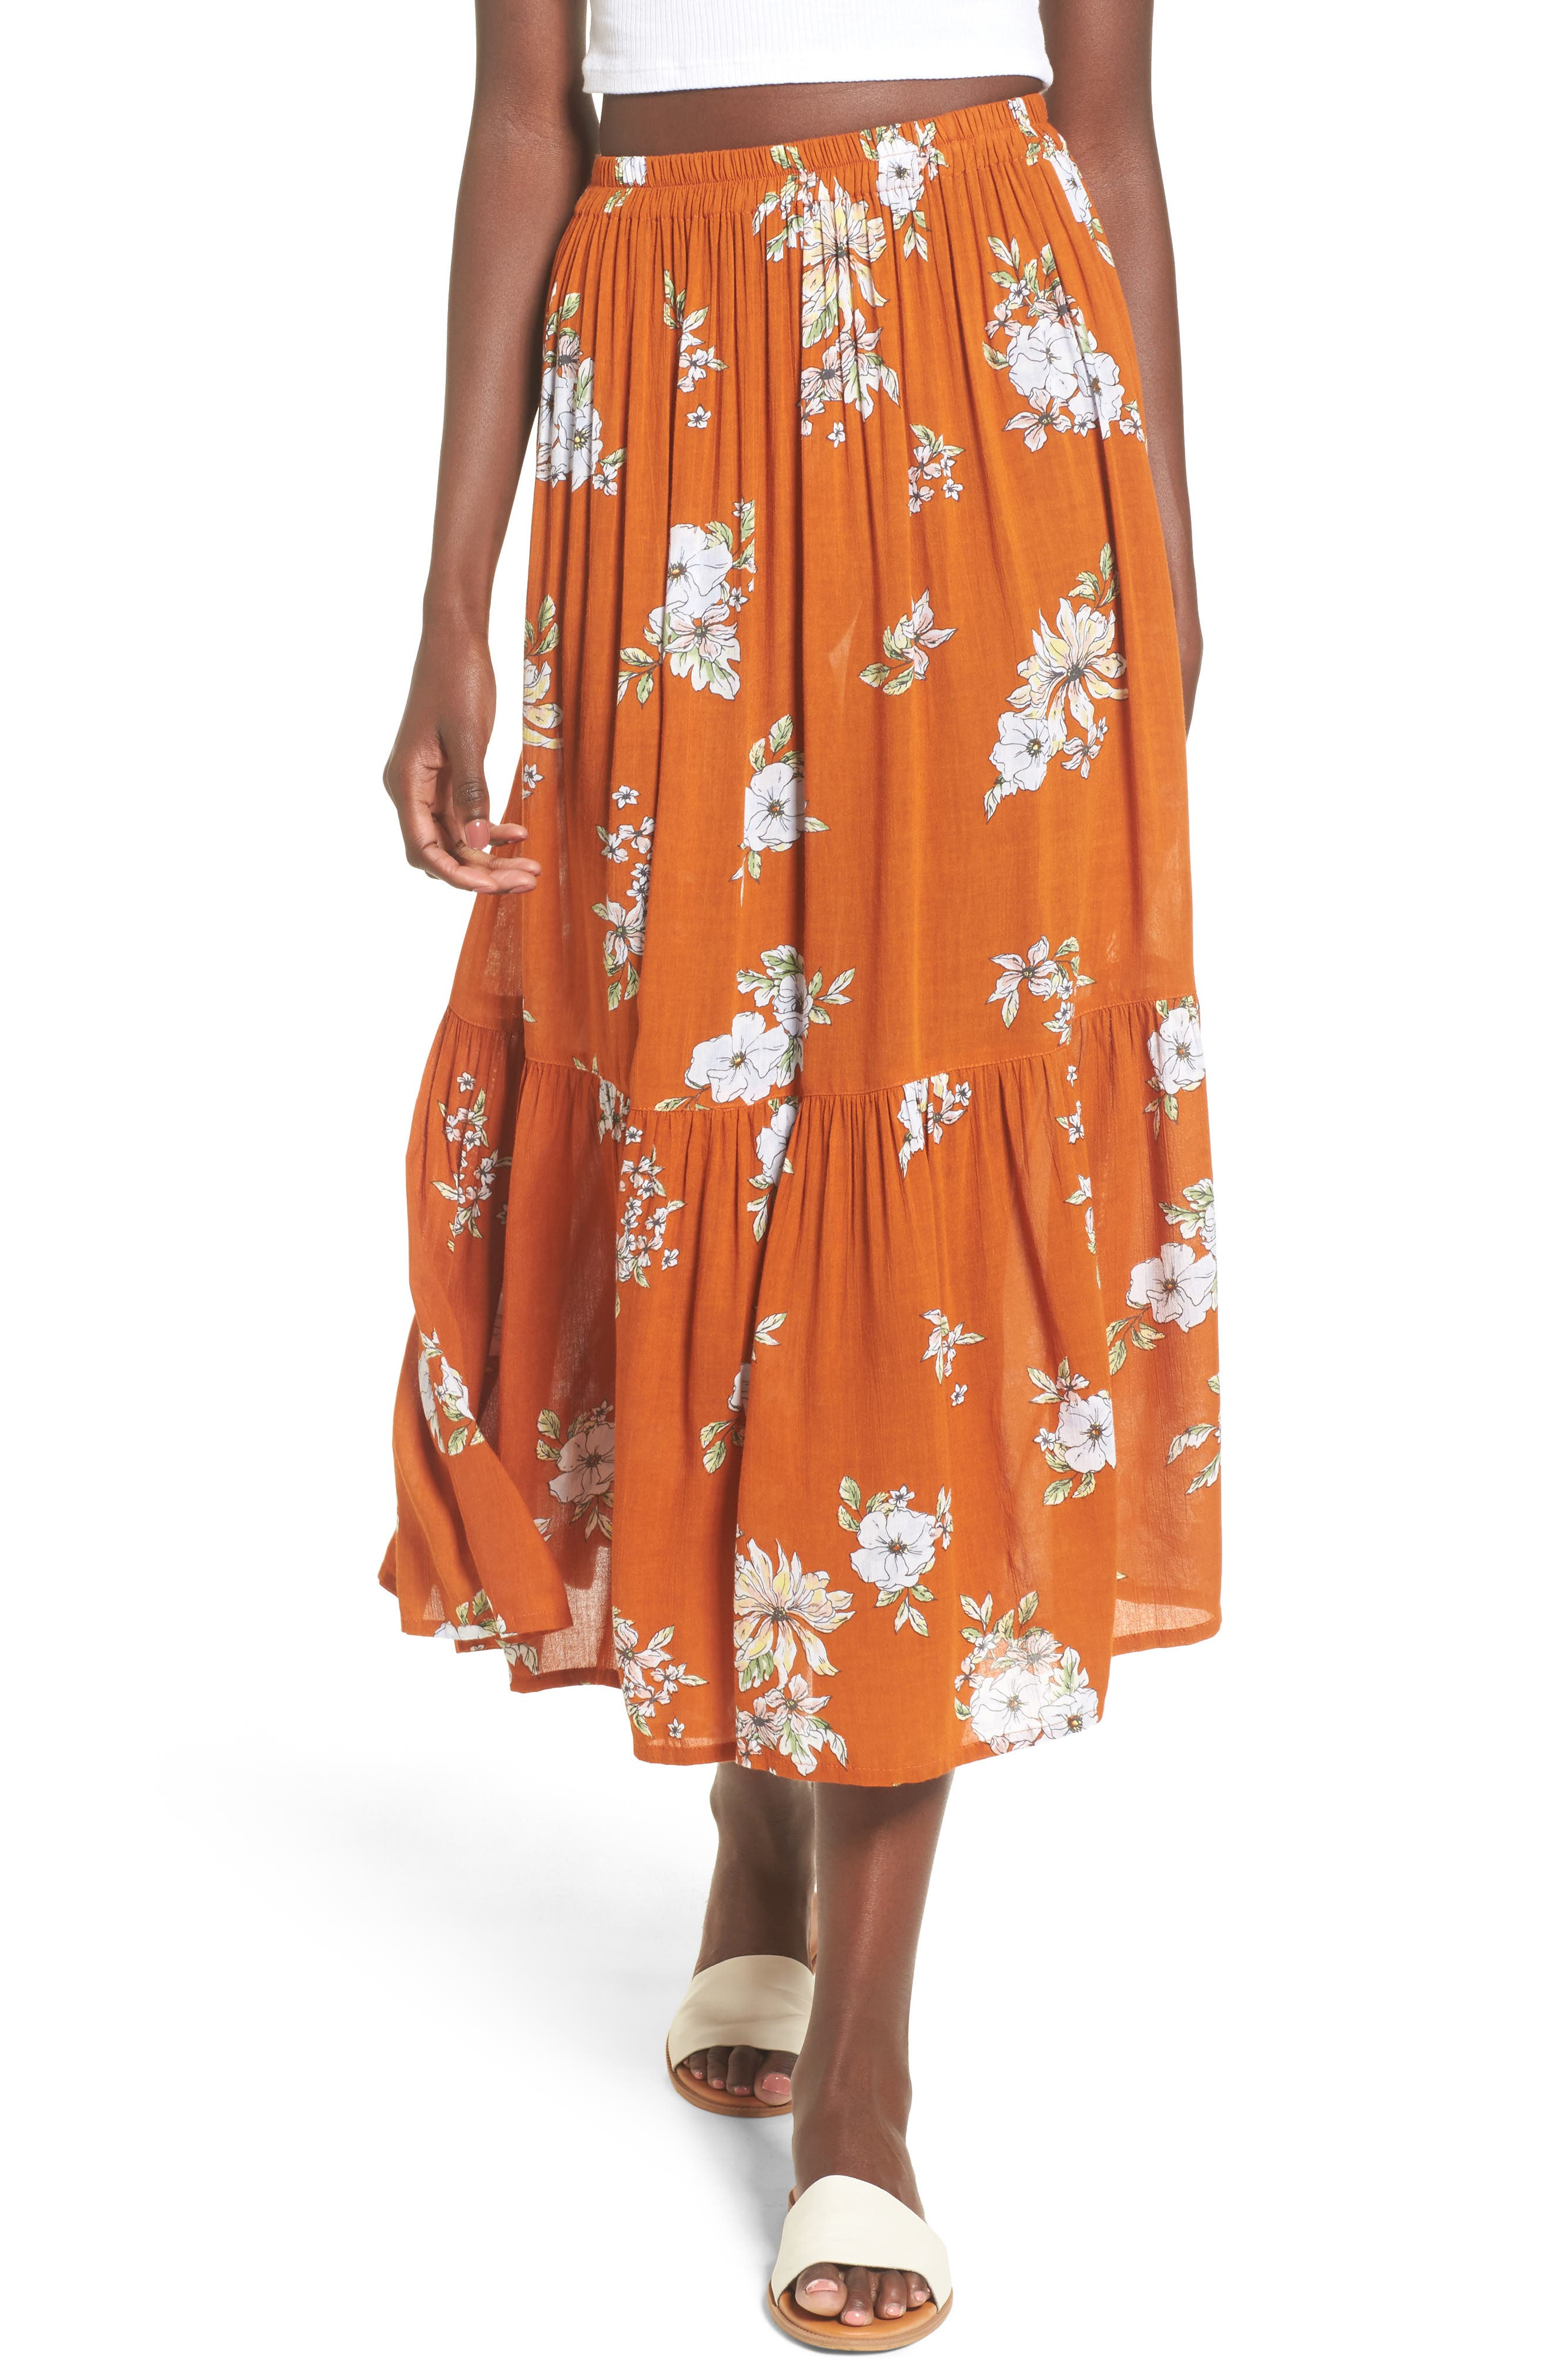 Alternate Image 1 Selected - FAITHFULL THE BRAND Rosewood Floral Tiered Skirt